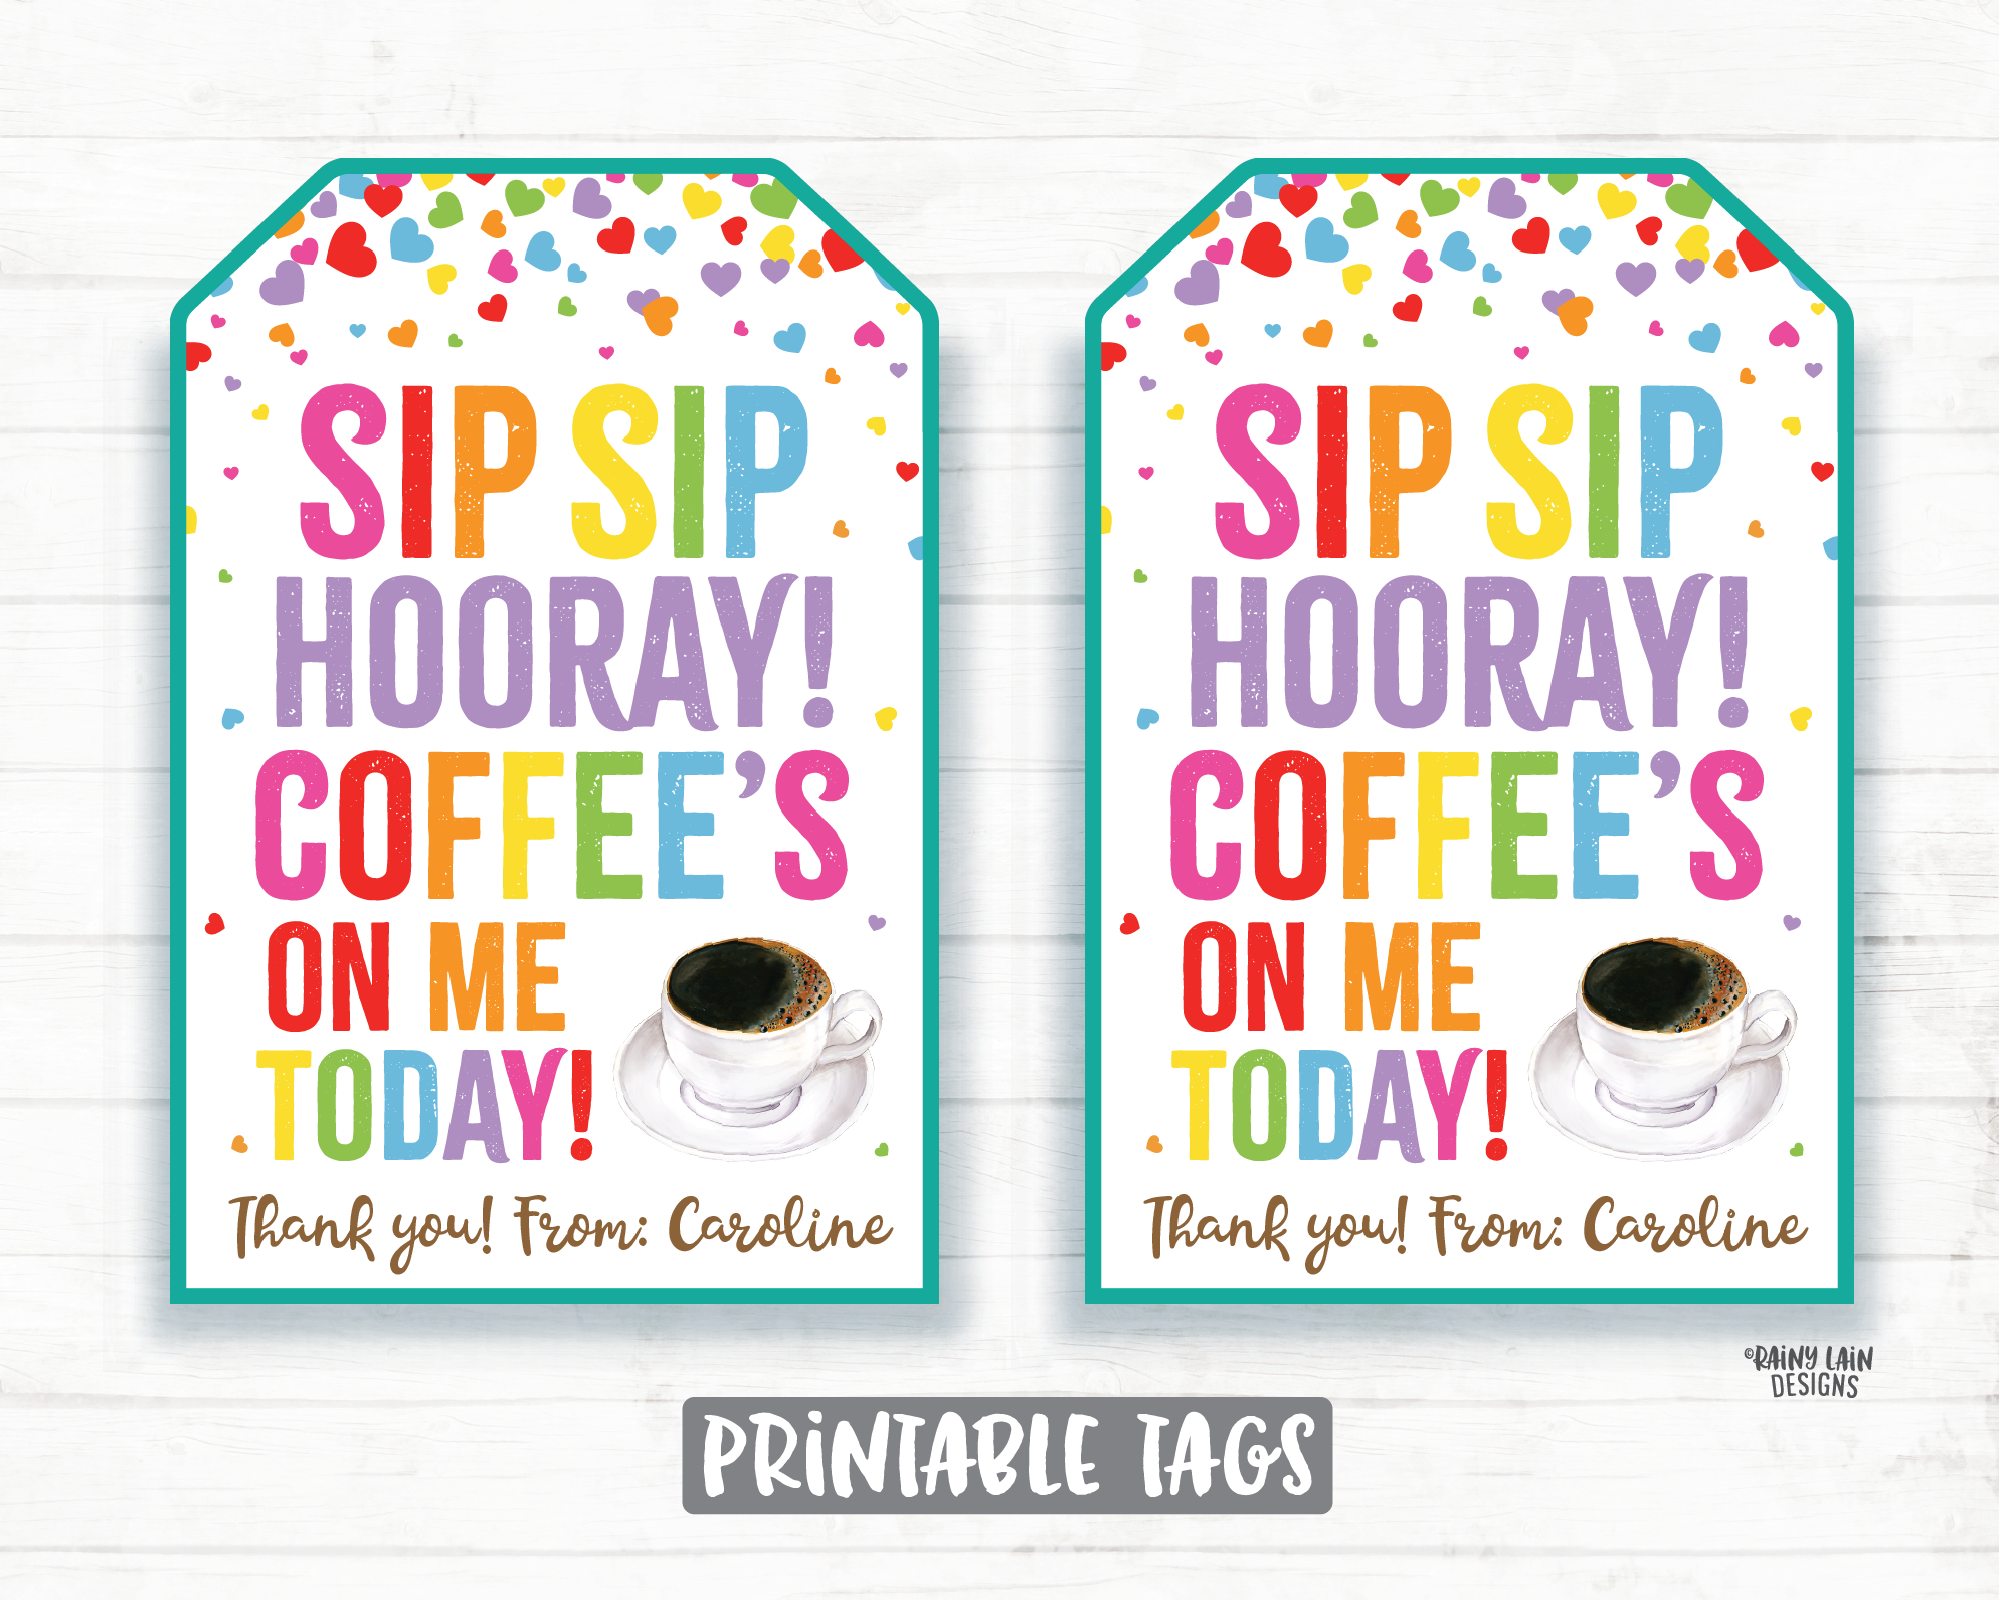 Sip Sip Hooray Coffee's on Me Today Tag, Coffee Gift Tag, Employee Appreciation, Company, Staff Co-Worker Corporate Coffee Teacher Thank you